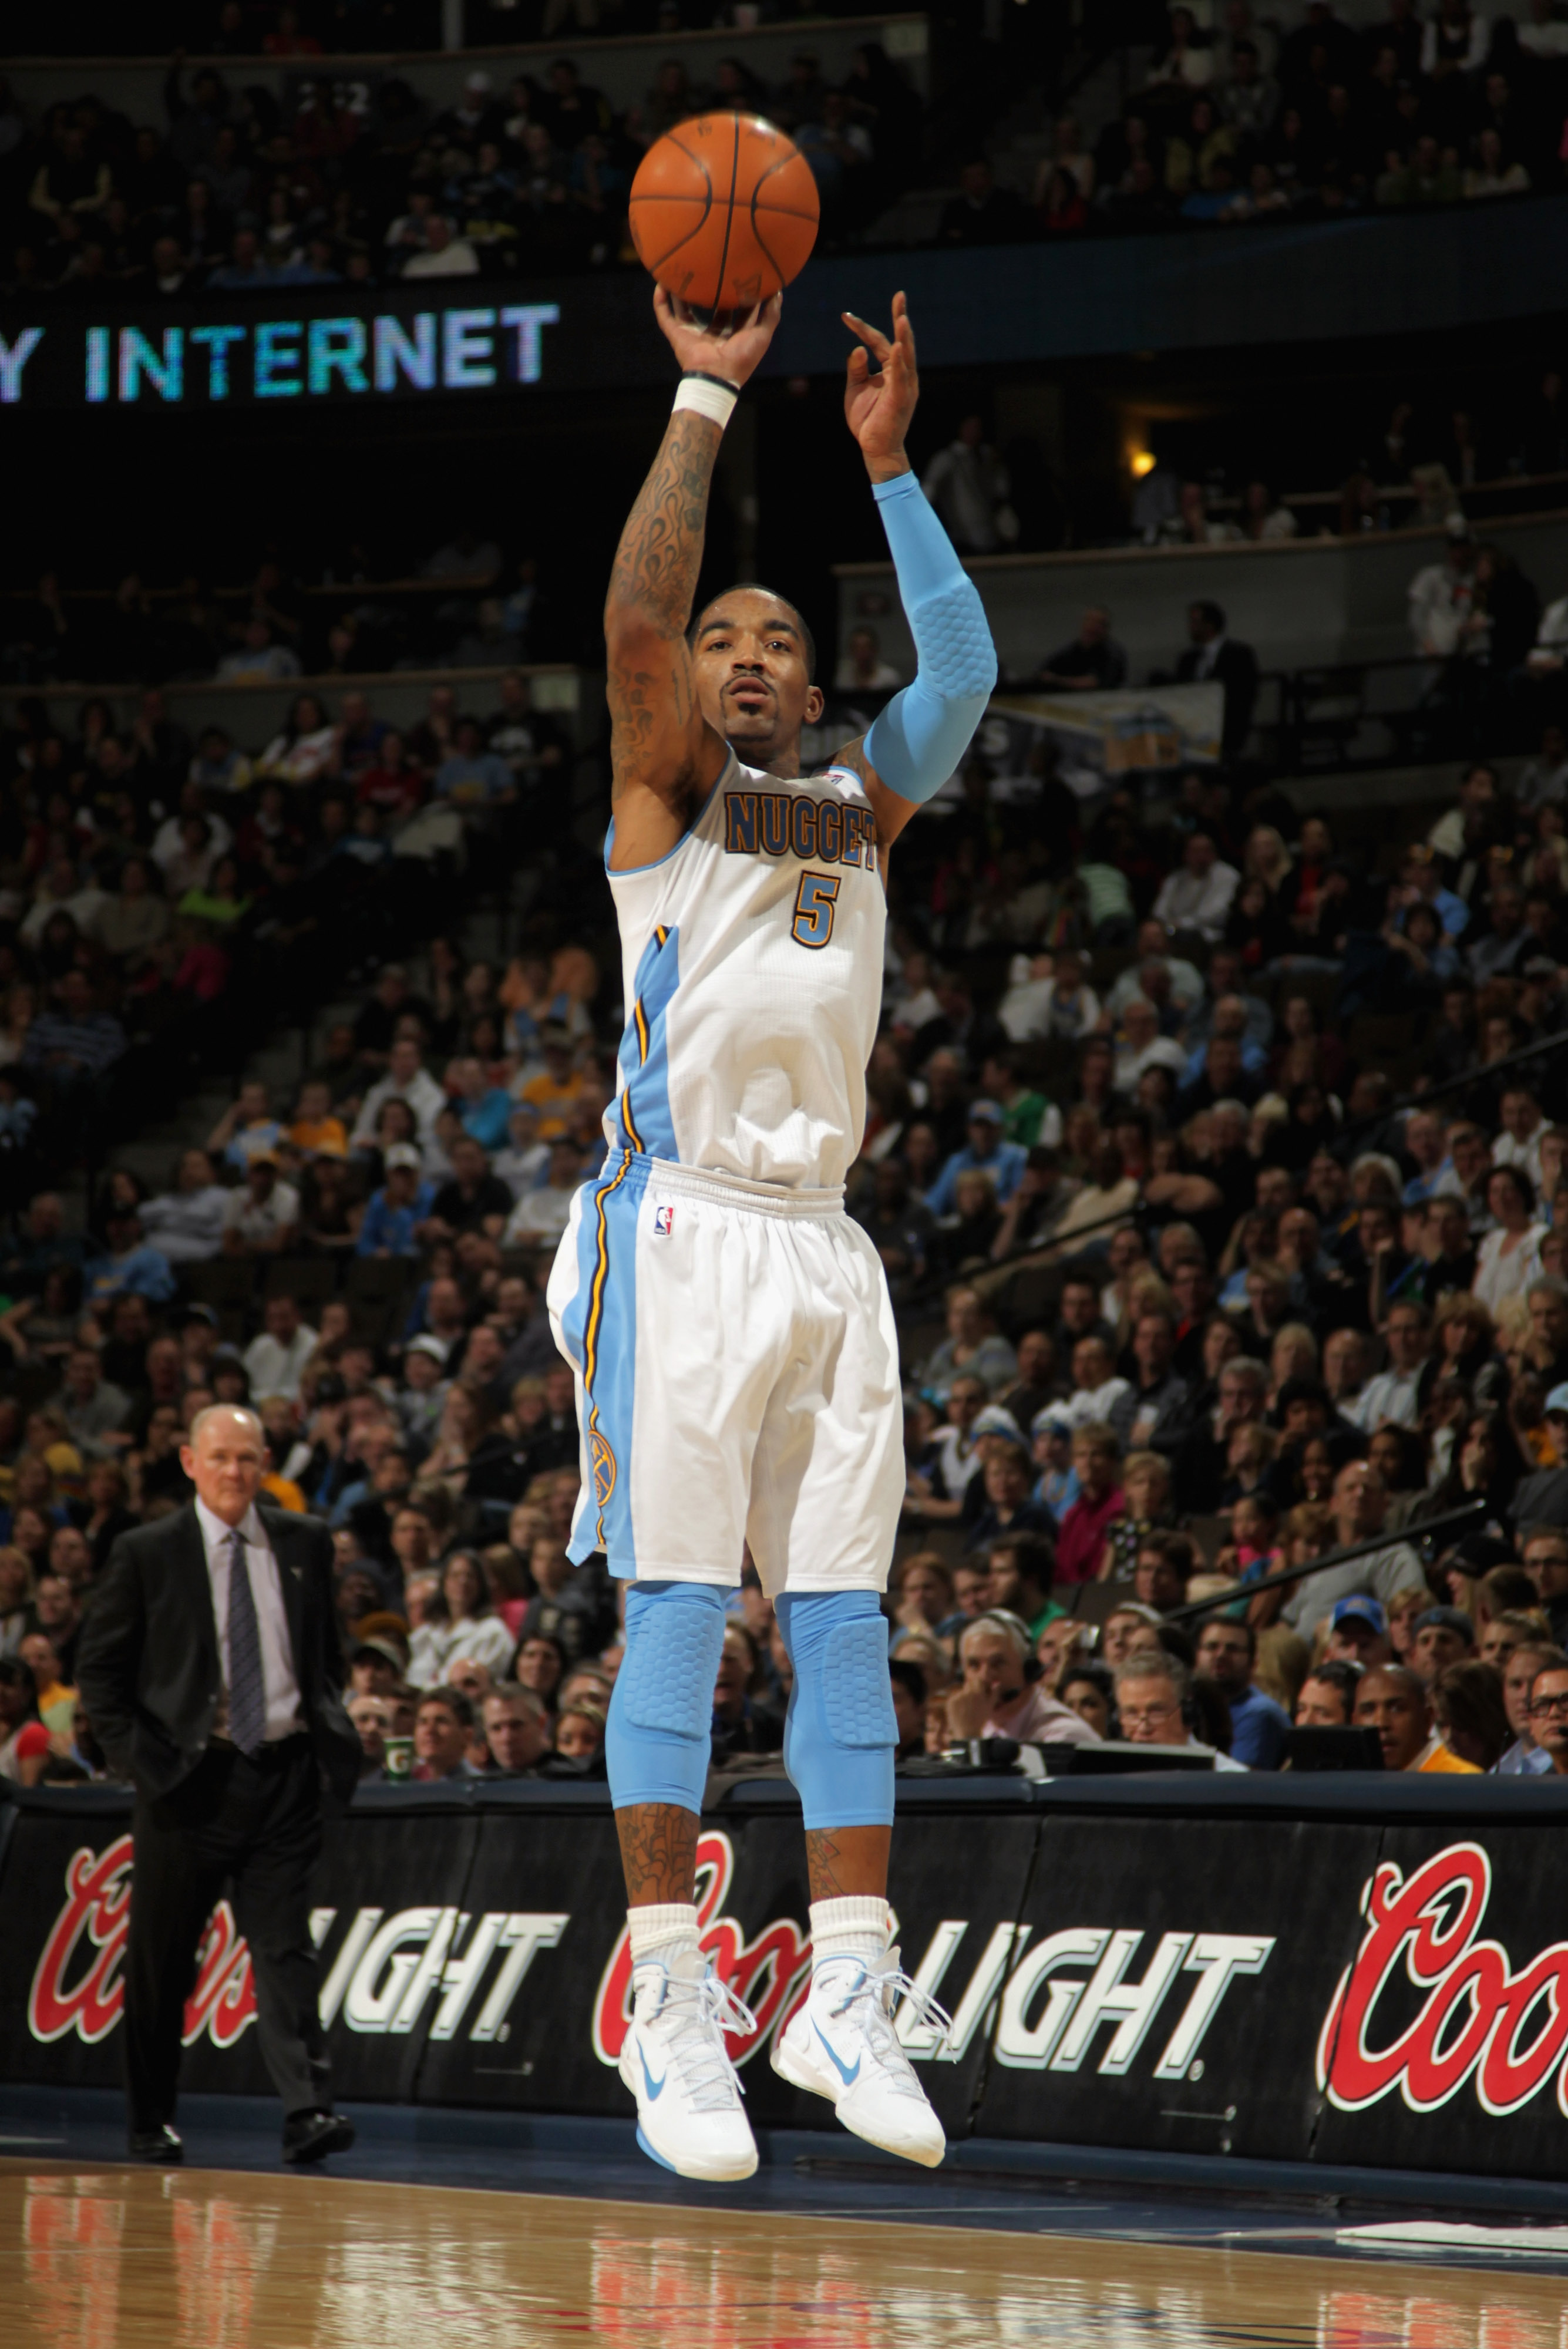 DENVER, CO - MARCH 12:  J.R. Smith #5 of the Denver Nuggets takes a three point shot as he had a game high 31 points agianst the Detroit Pistons as he goes to the basket at the Pepsi Center on March 12, 2011 in Denver, Colorado. The Nuggets defeated the P